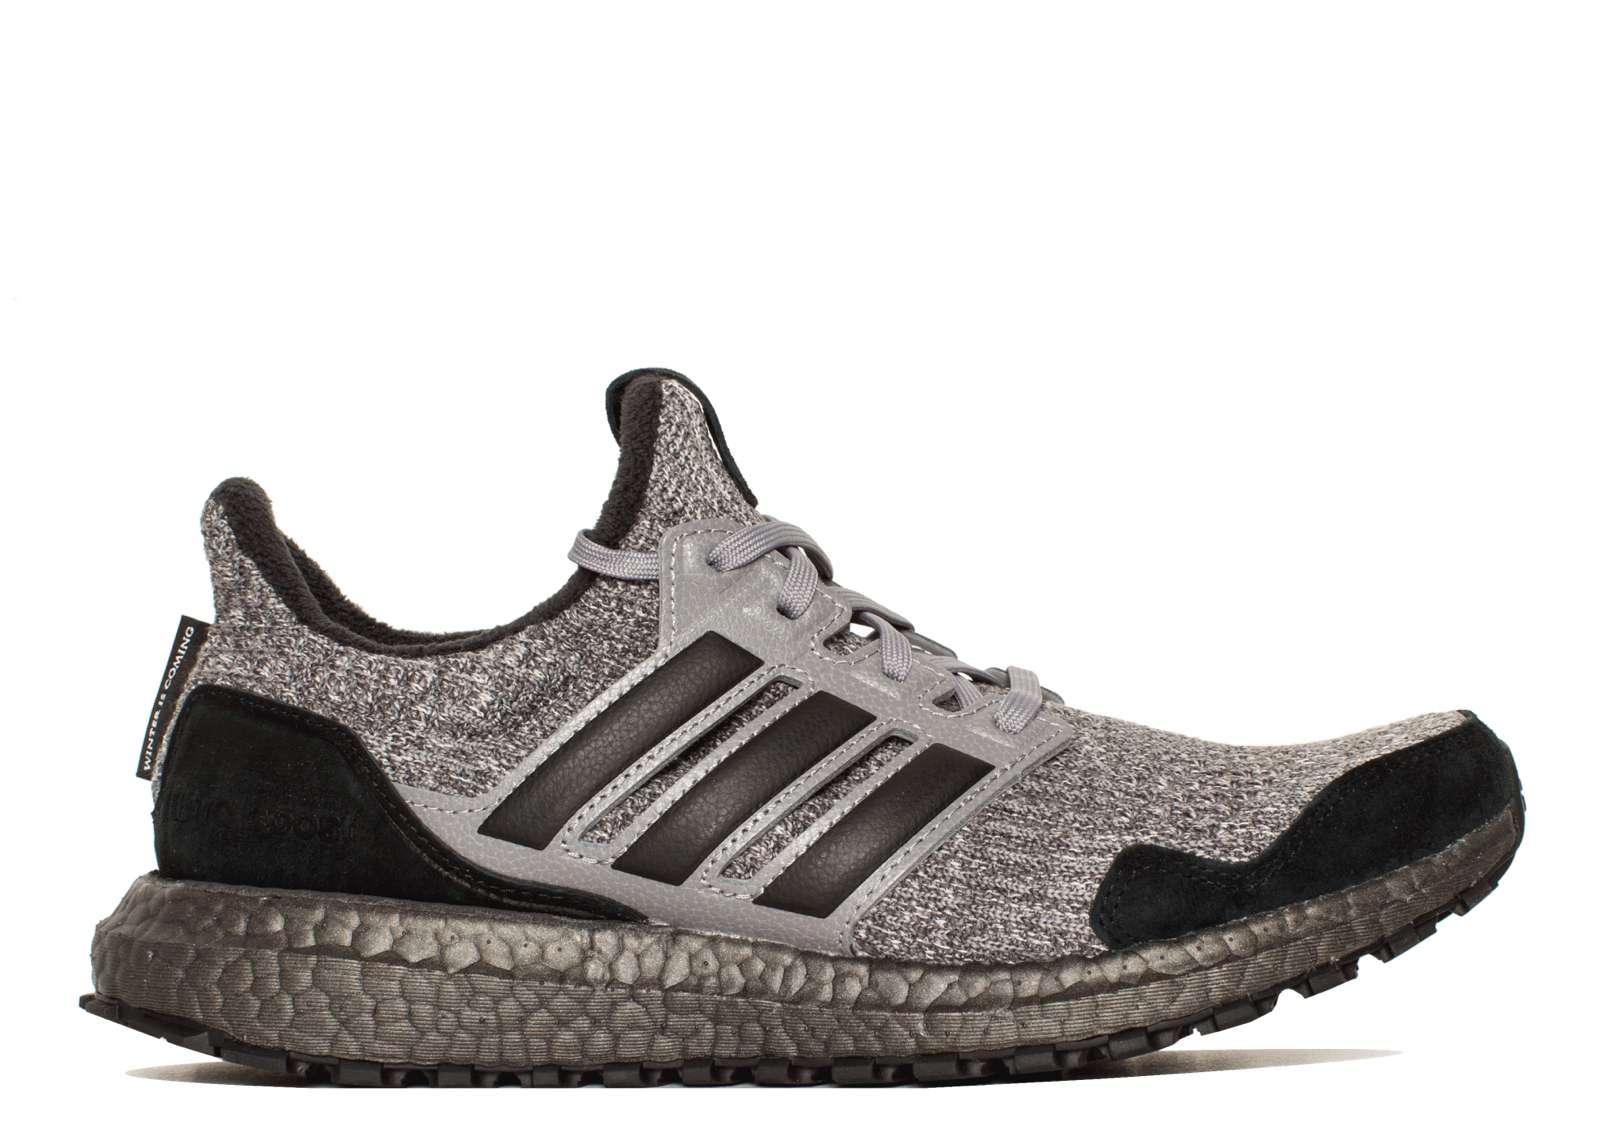 07200002a adidas Ultra Boost 4.0 Game of Thrones House Stark